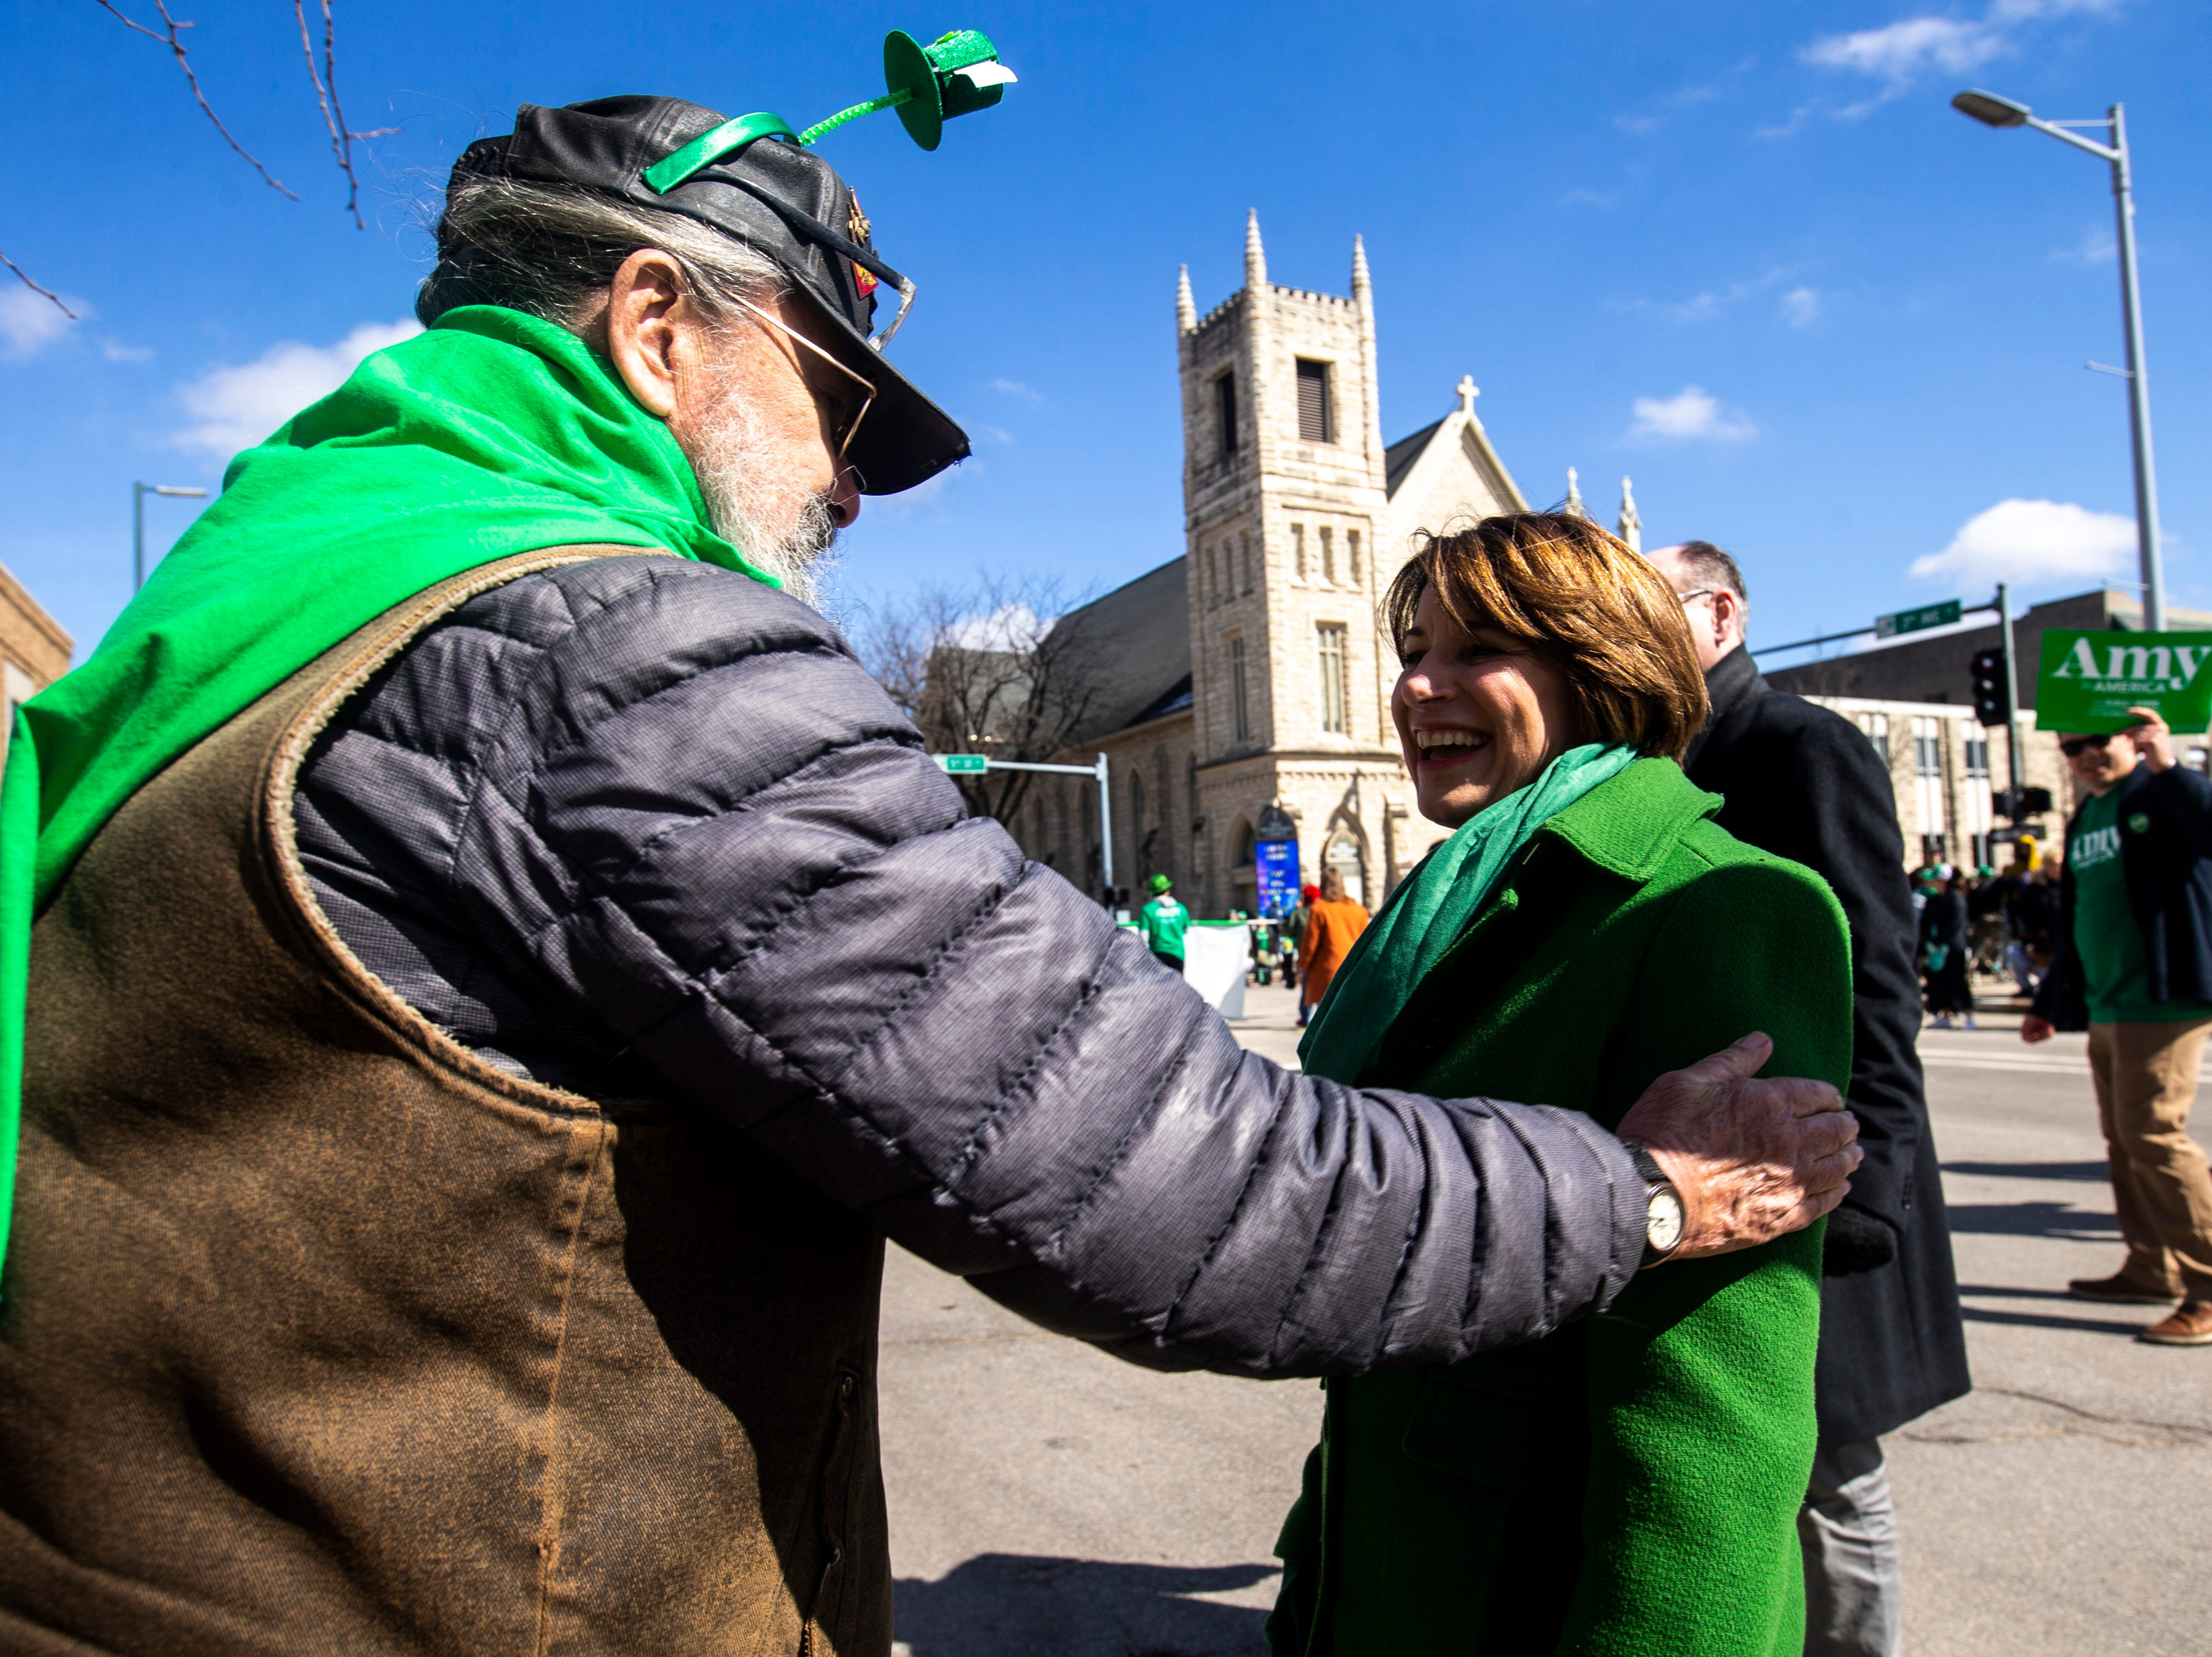 U.S. Sen. Amy Klobuchar, D-Minn., meets with a Cedar Rapids resident who welcomed her to the city while she walked in the Saint Patrick's Day Parade Society (SaPaDaPaSo) parade on Sunday, March 17, 2019, in downtown Cedar Rapids, Iowa.